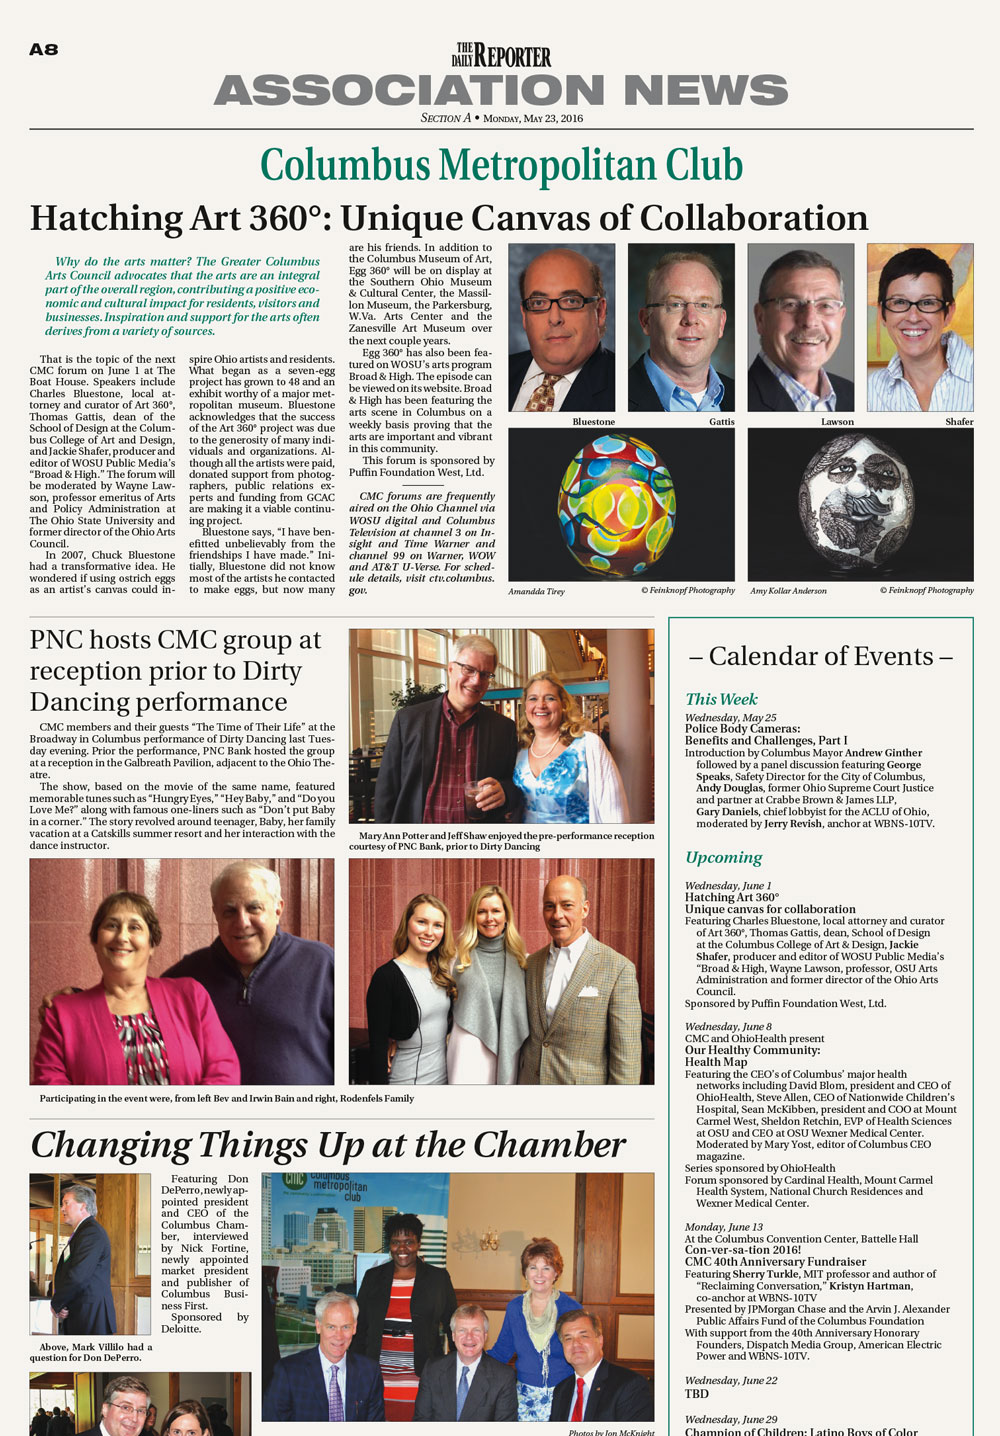 Read the May 23, 2016 Daily Reporter article